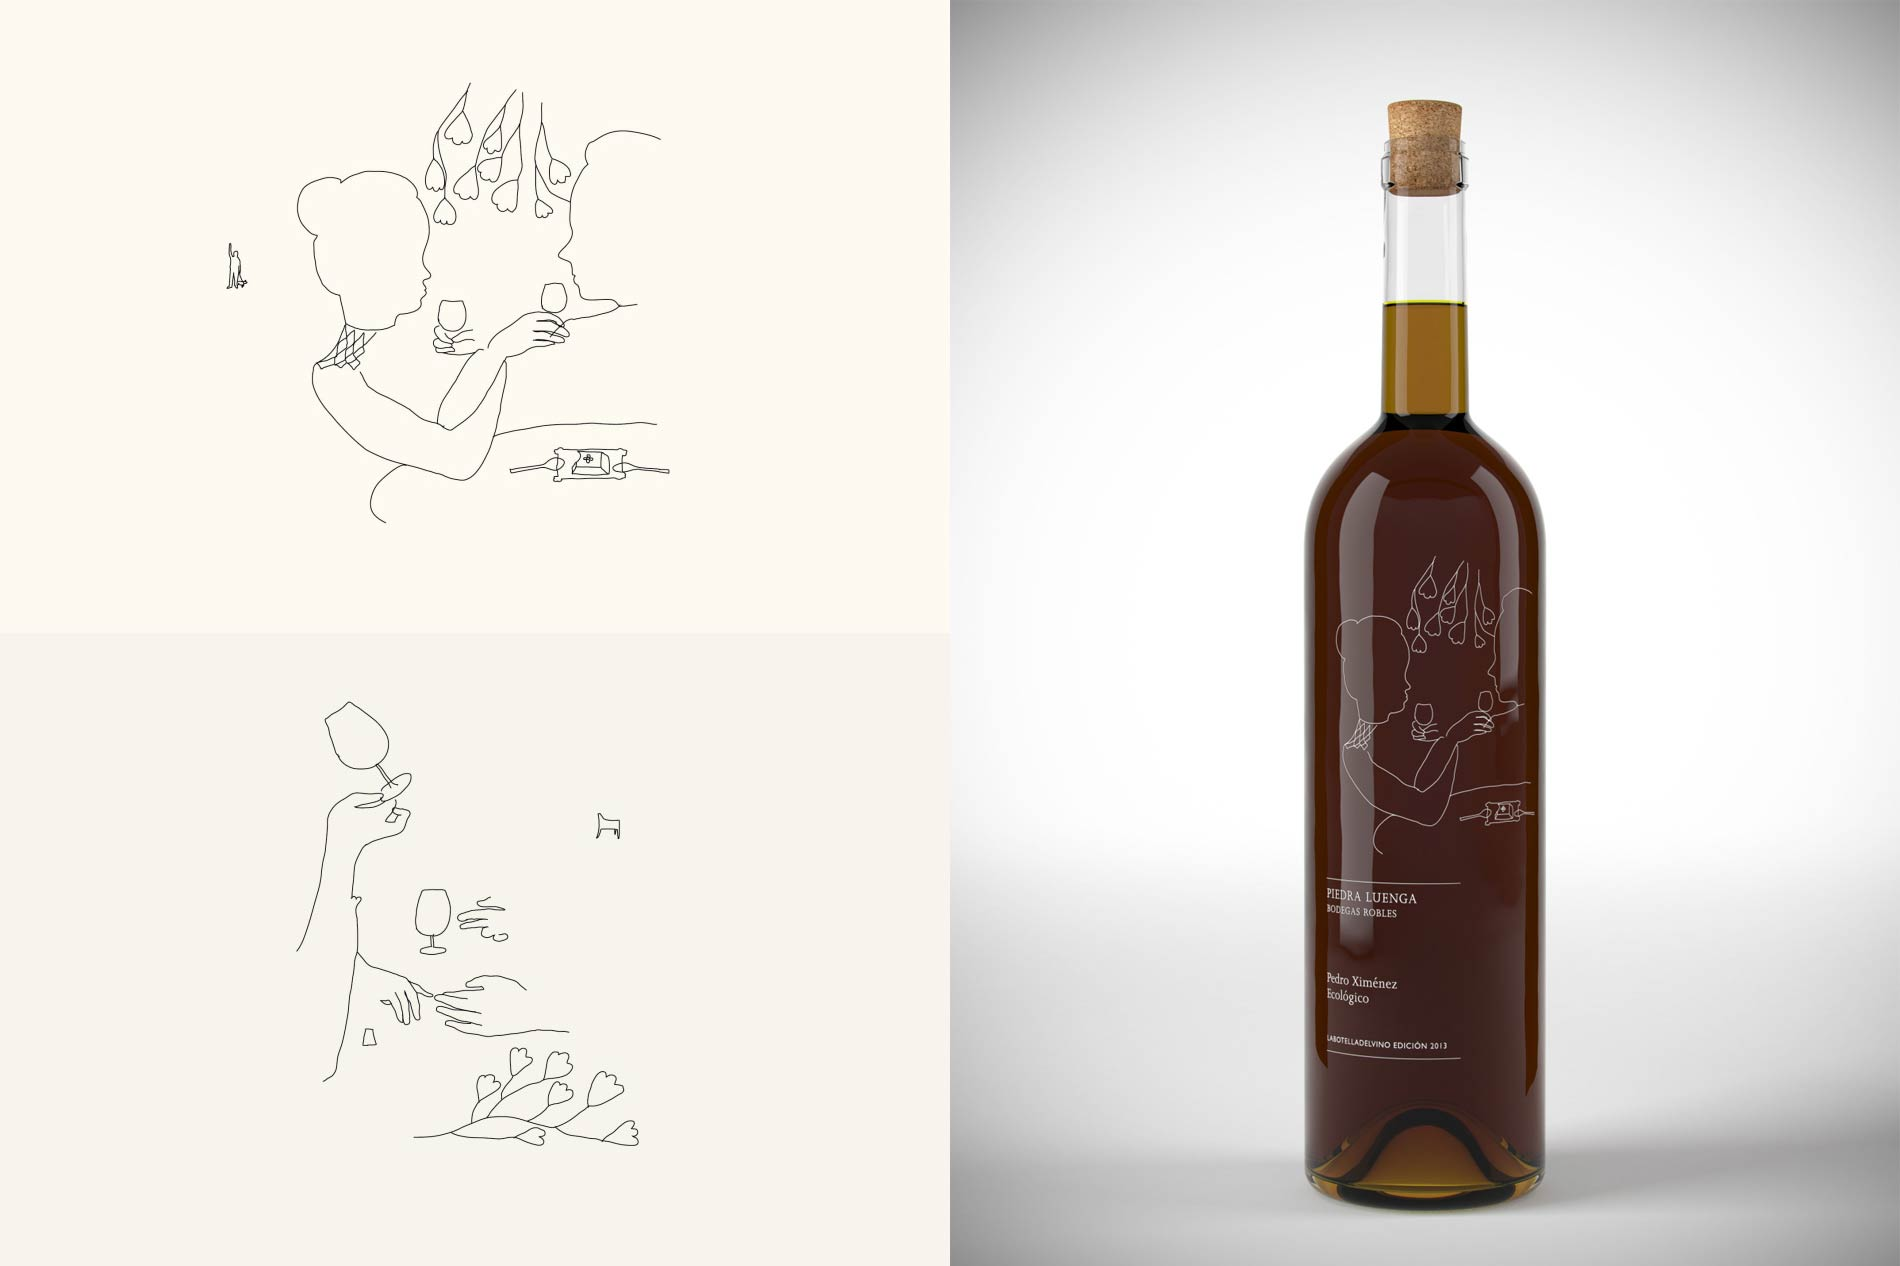 A series of illustrations and wine bottles with screen-print illustrations on them